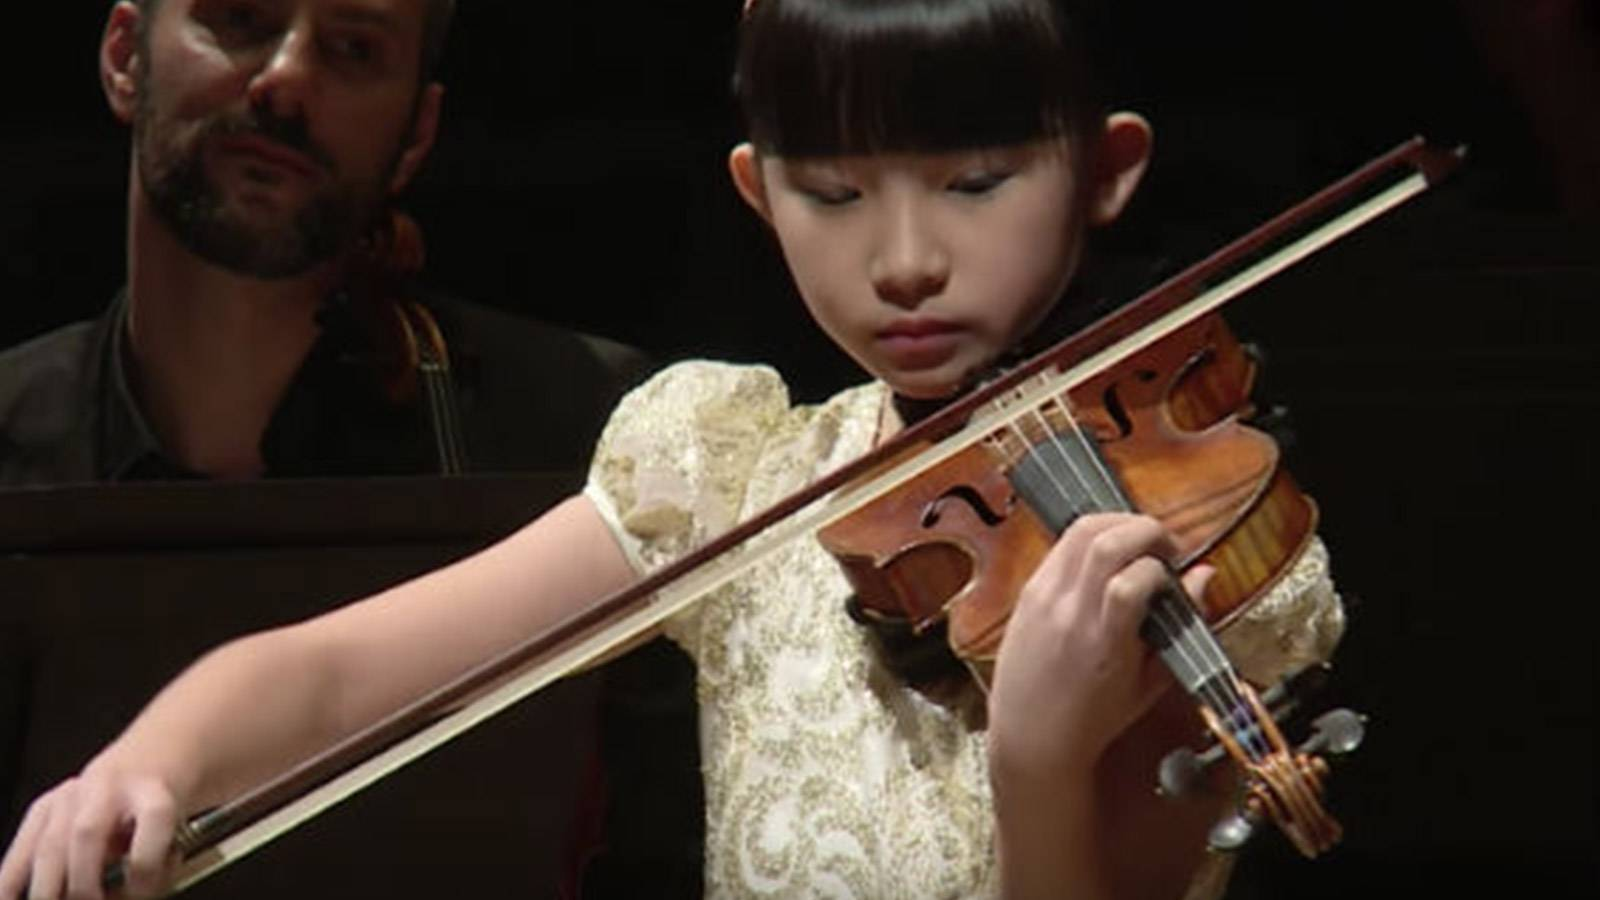 Kids-CONVERSATIONS-WITH-An-Award-Winning-Violin-Prodigy-3